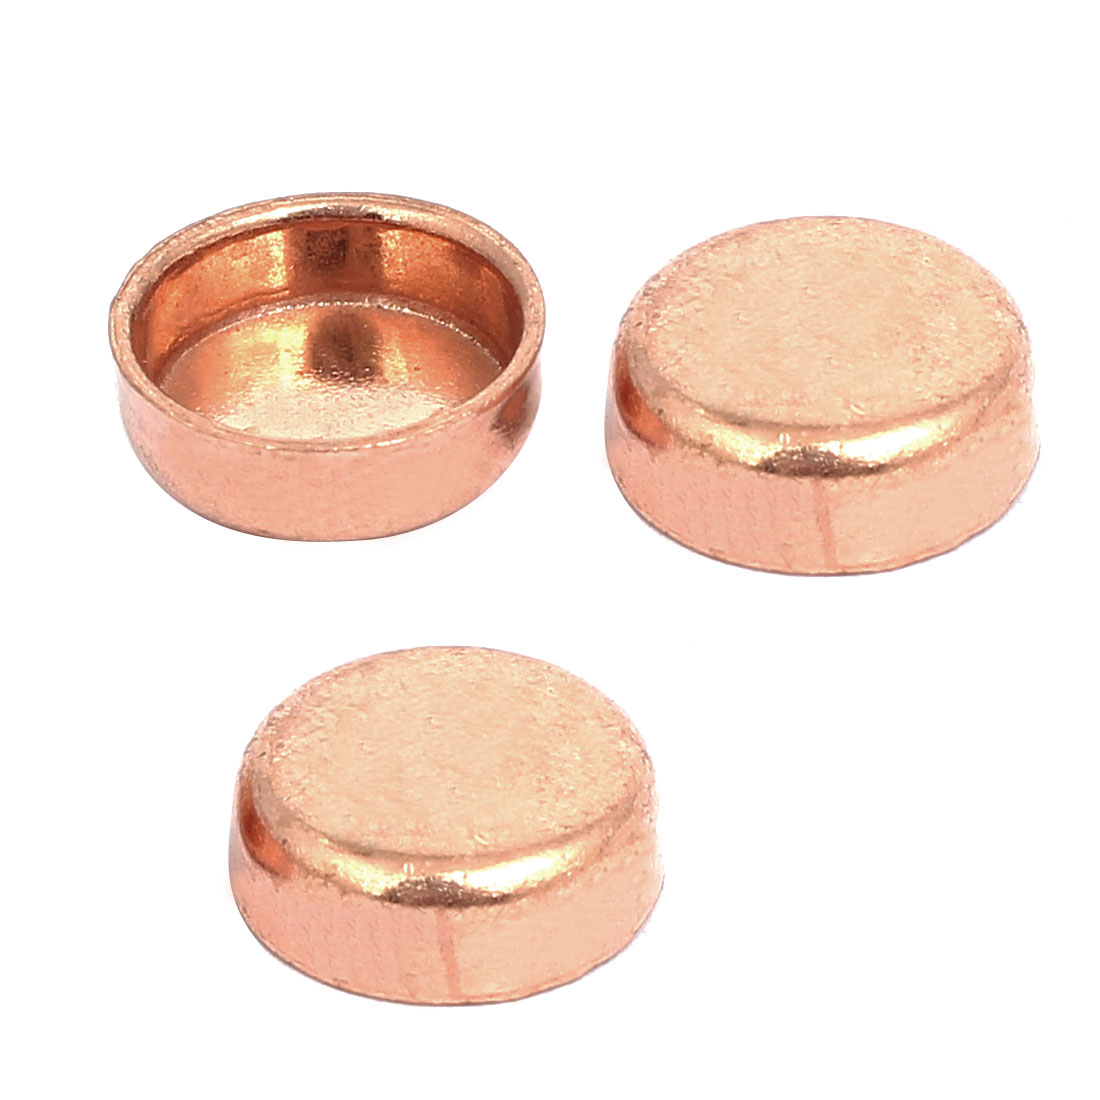 12.7mmx0.8mm Copper Pipe Tube End Cap Cover Plumbing Fitting 3pcs